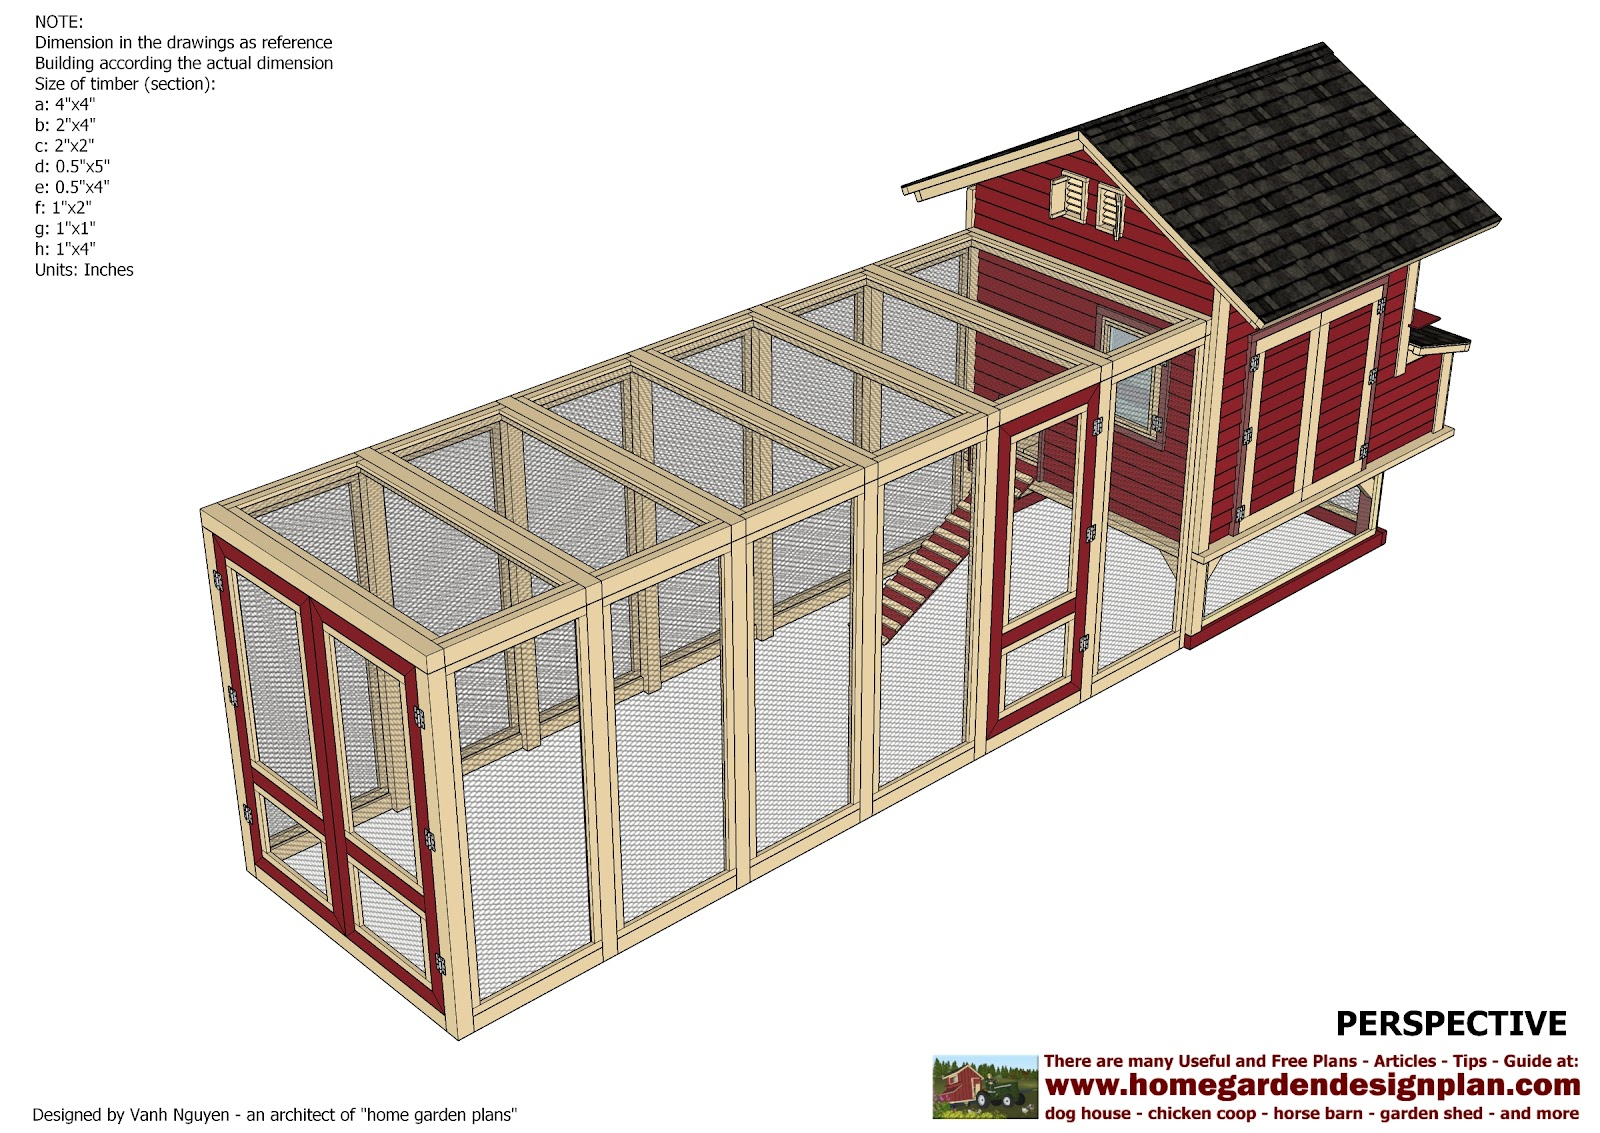 Plans for a chicken coop for 6 chickens build small for Chicken coop size for 6 chickens